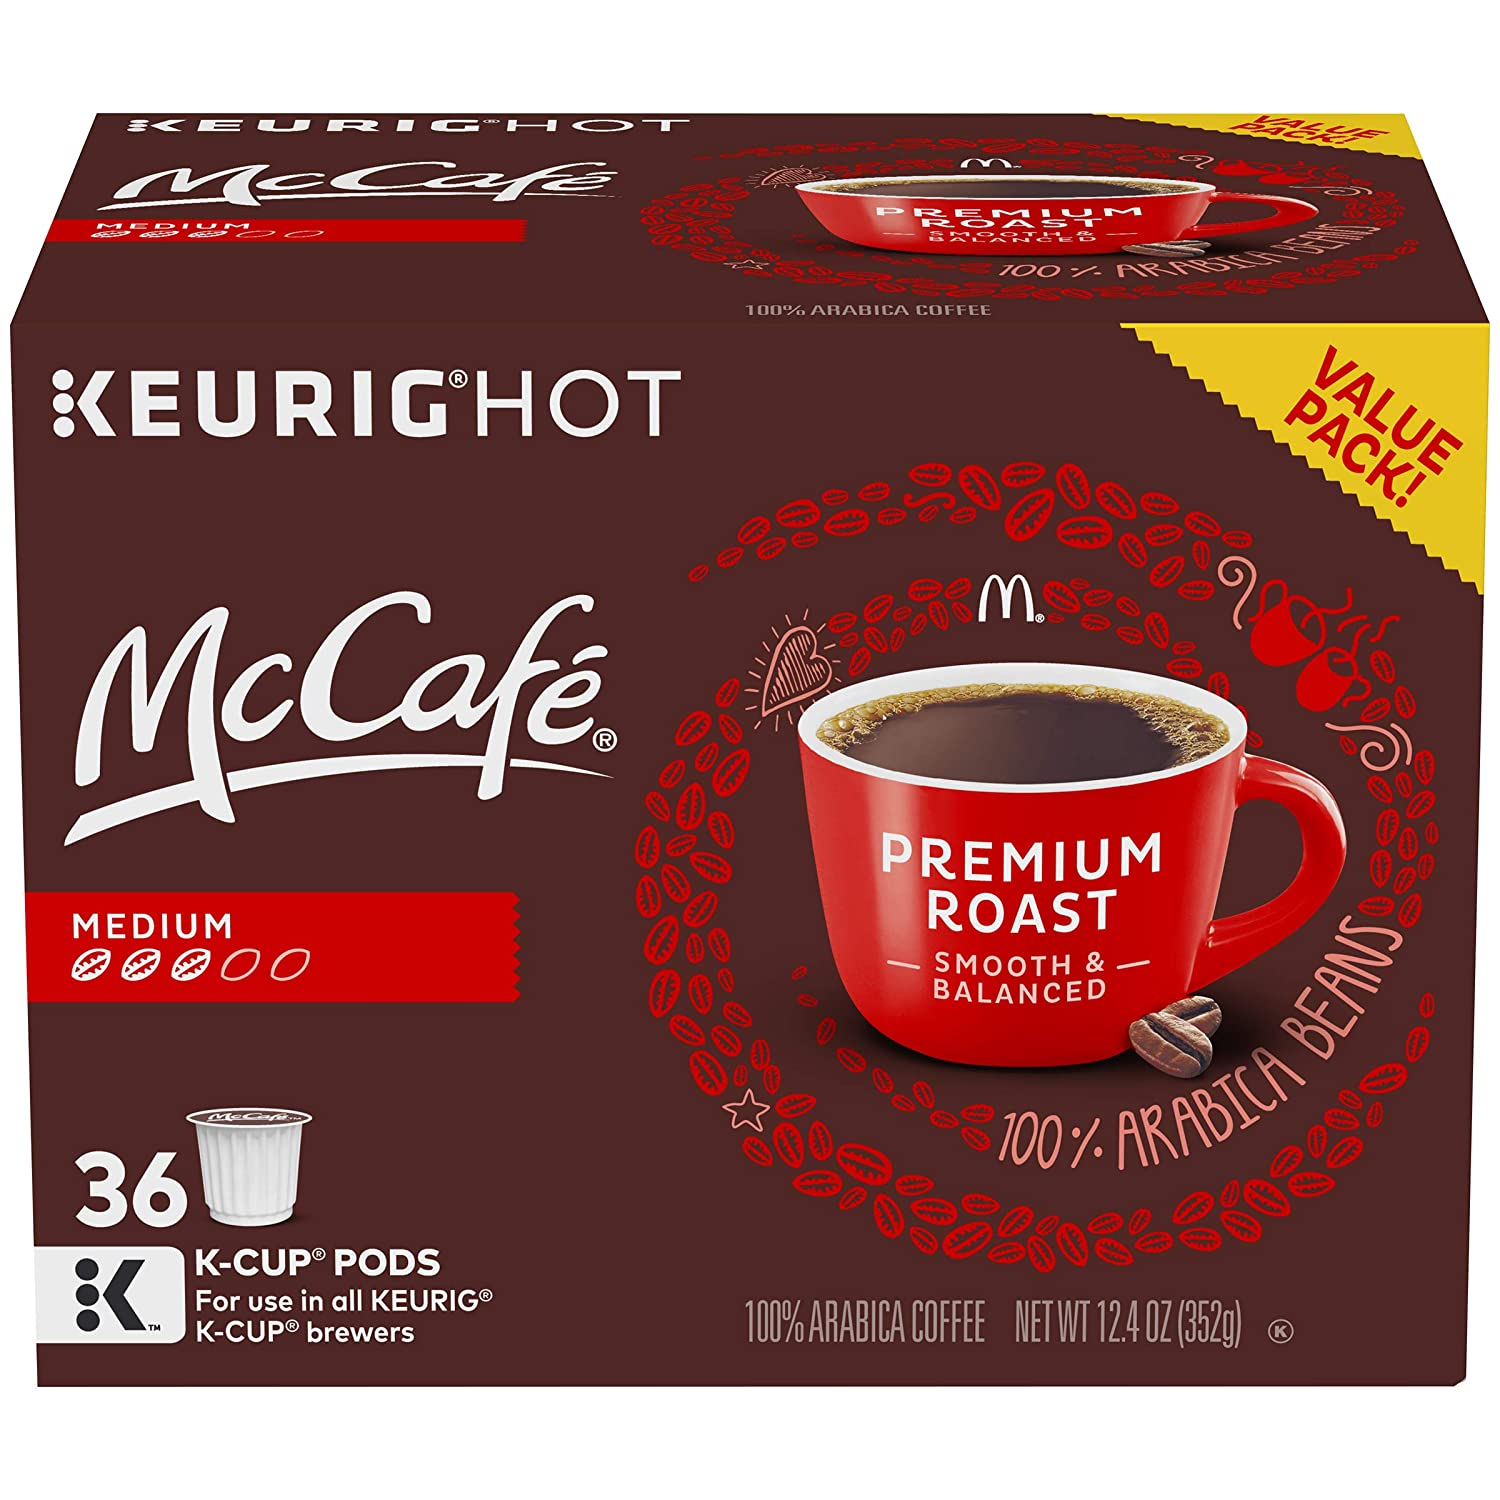 McCafe Premium Roast Coffee K-Cup Pods, 36 Count: Amazon.com ...